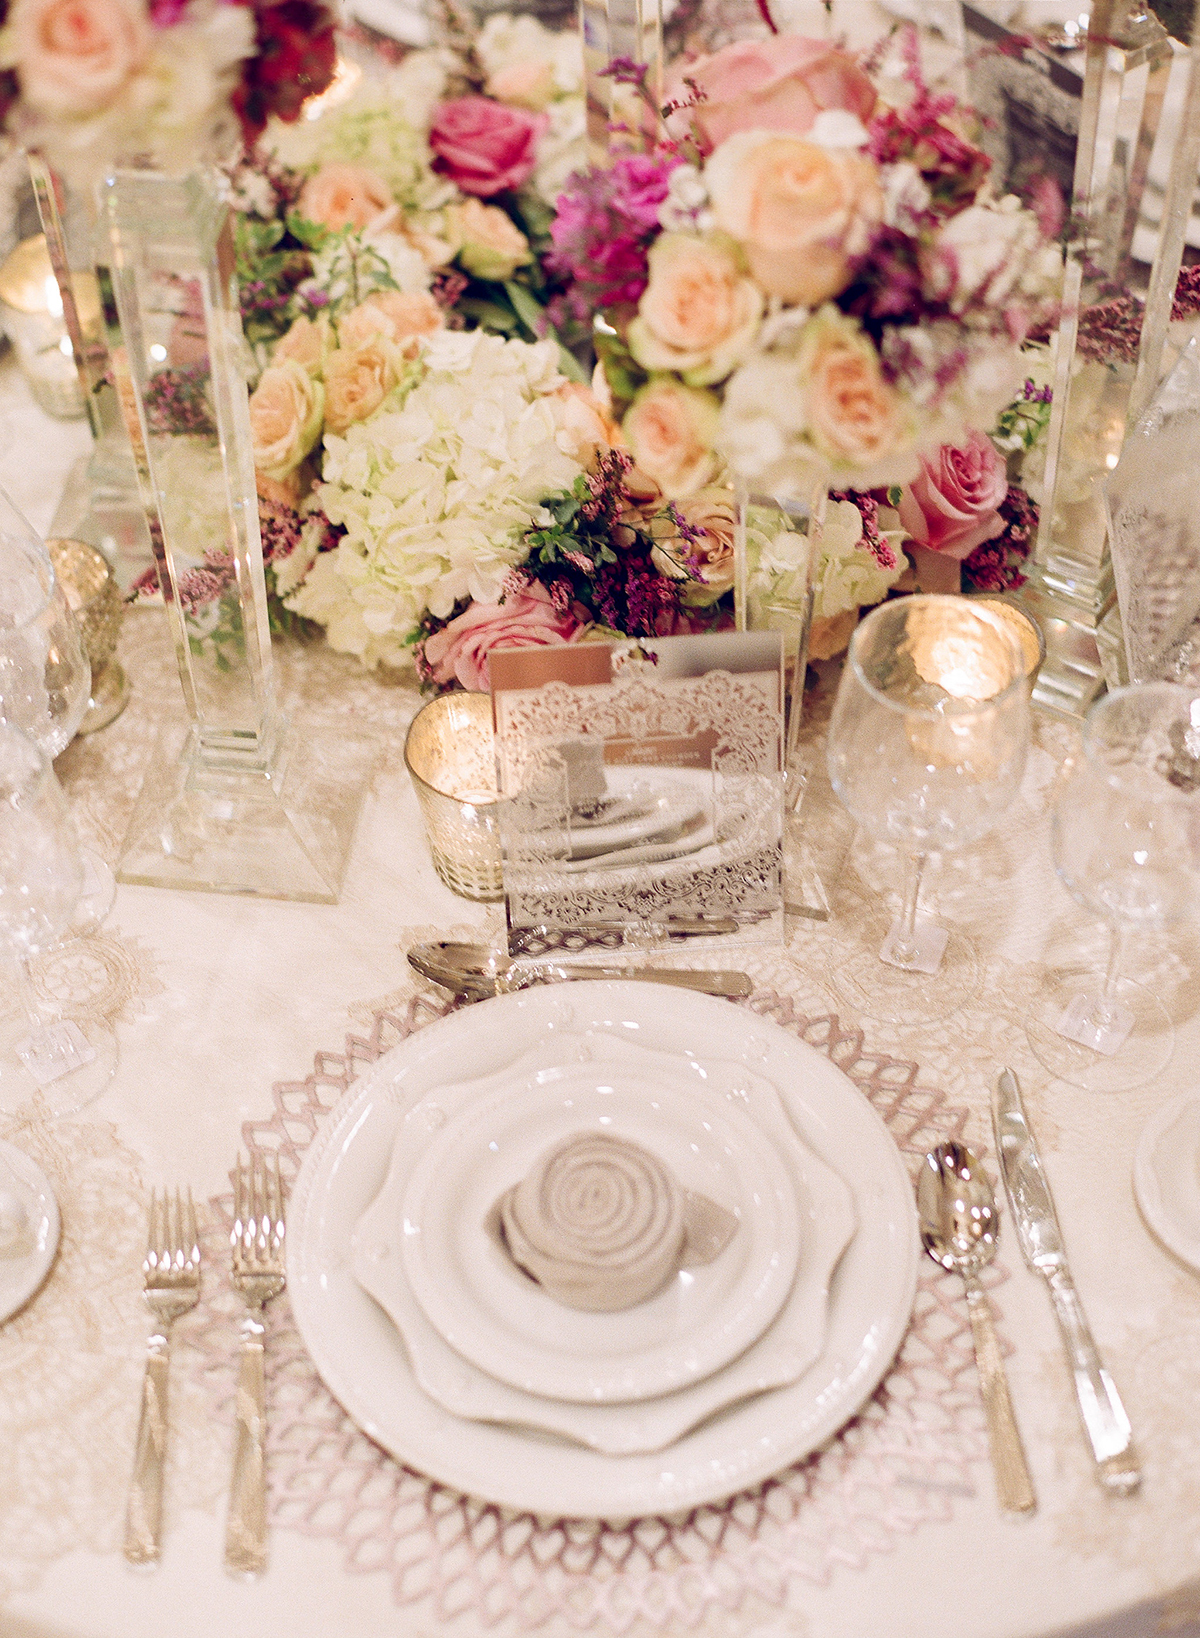 daytoremember.net | Kelly Hornberger Photography | Sandlewood Manor | Tomball, Texas | A Day To Remember Houston Luxury Wedding Planning and Design